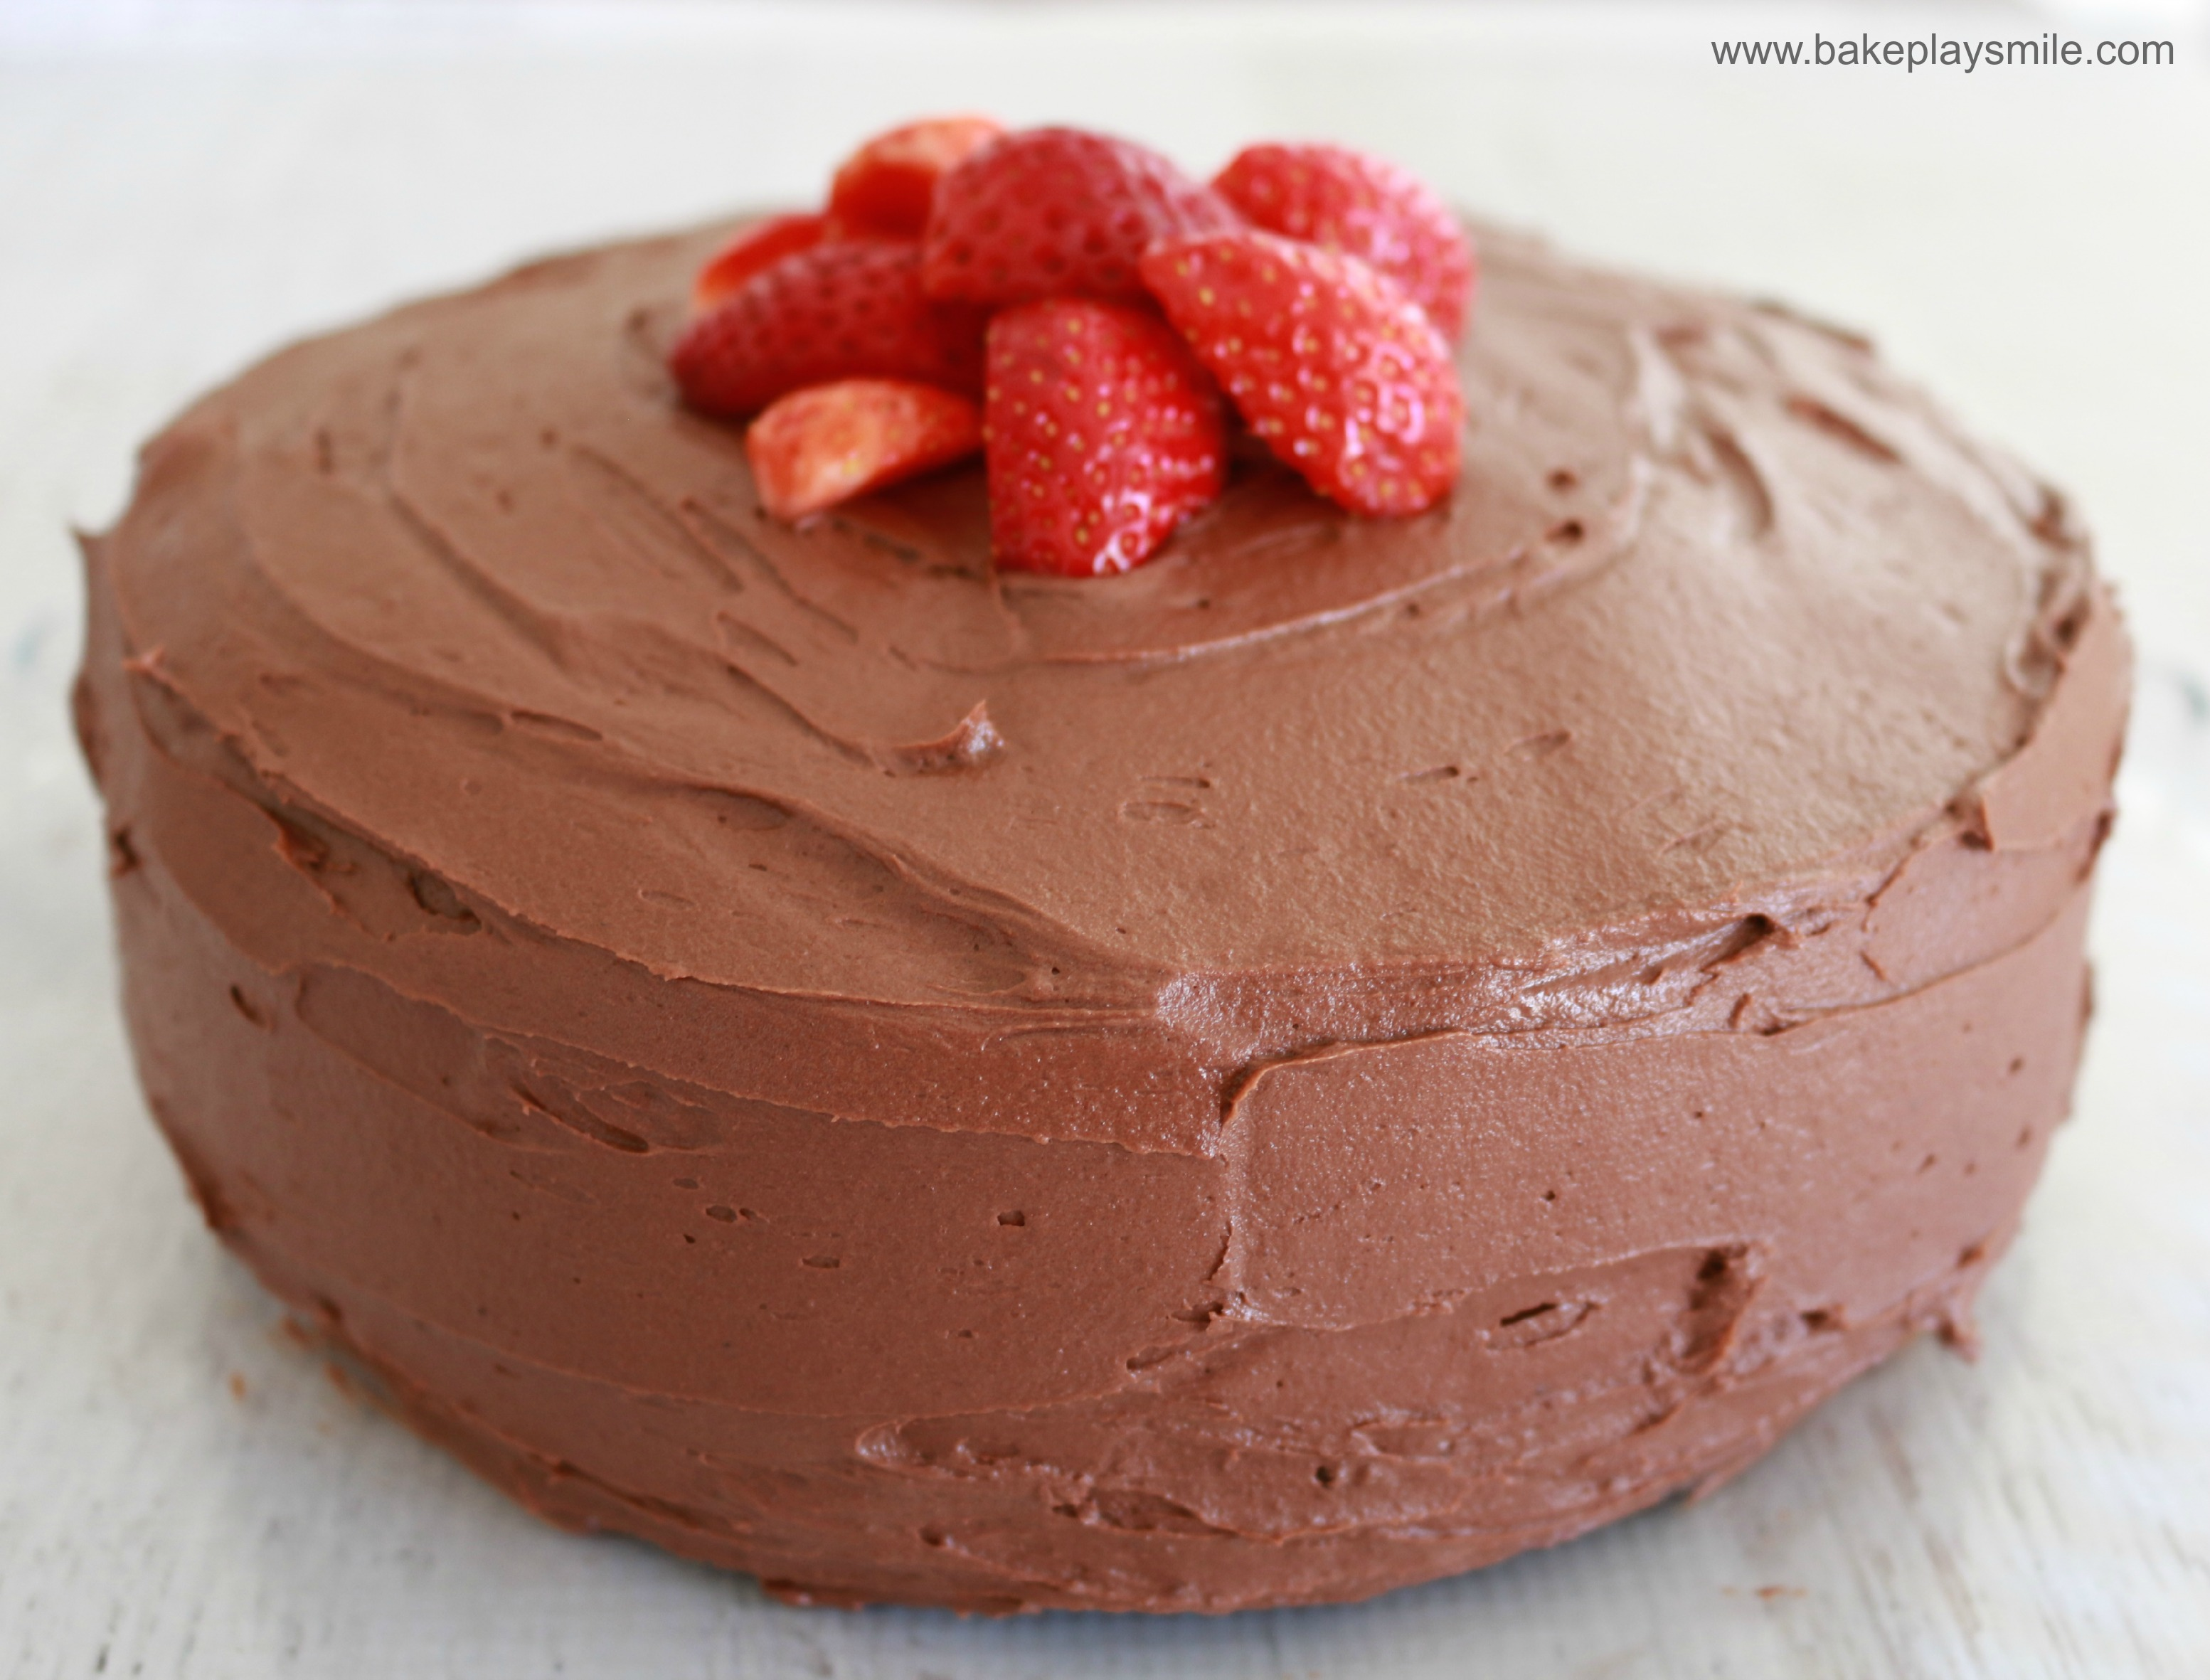 Chocolate Mud Cake Images : The Best Chocolate Mud Cake (most popular!) - Bake Play Smile